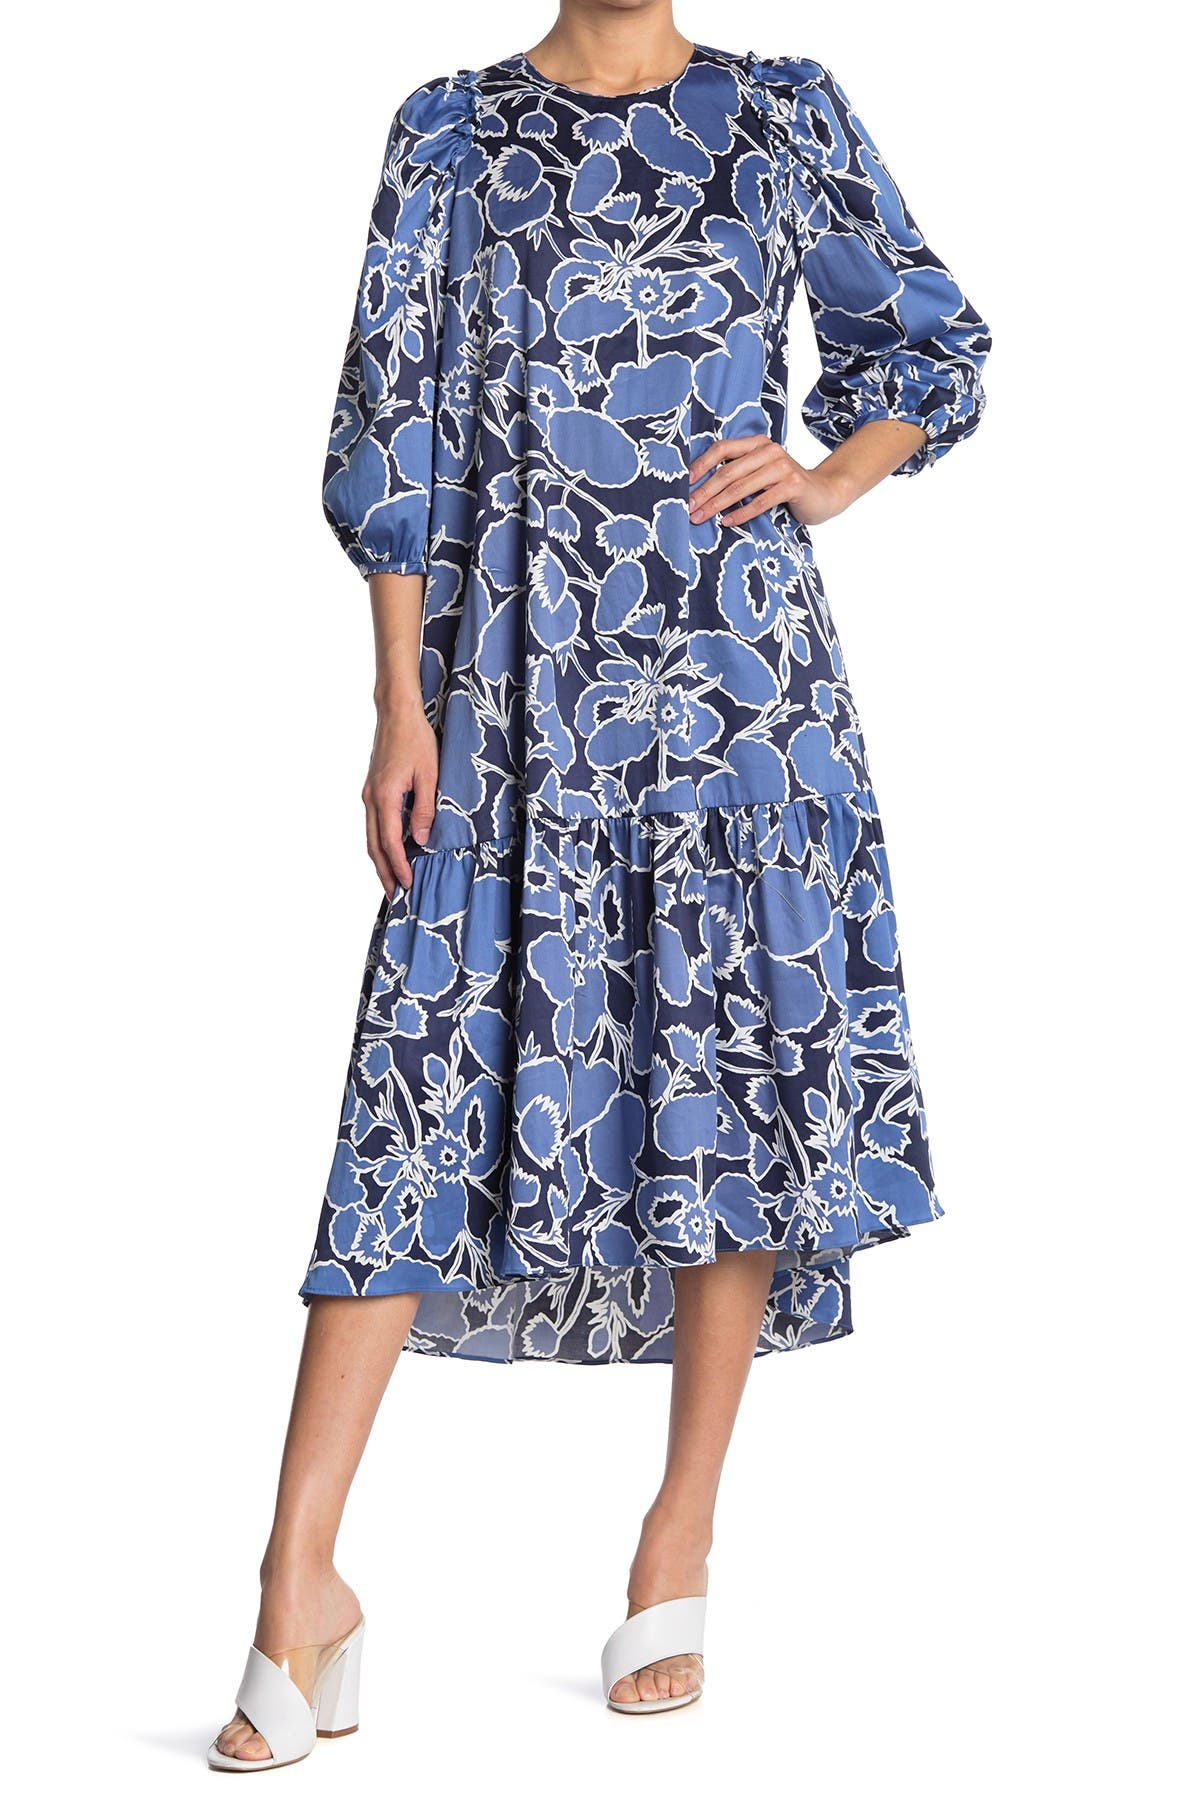 Image of MELLODAY Floral Ruffle Hem Midi Dress